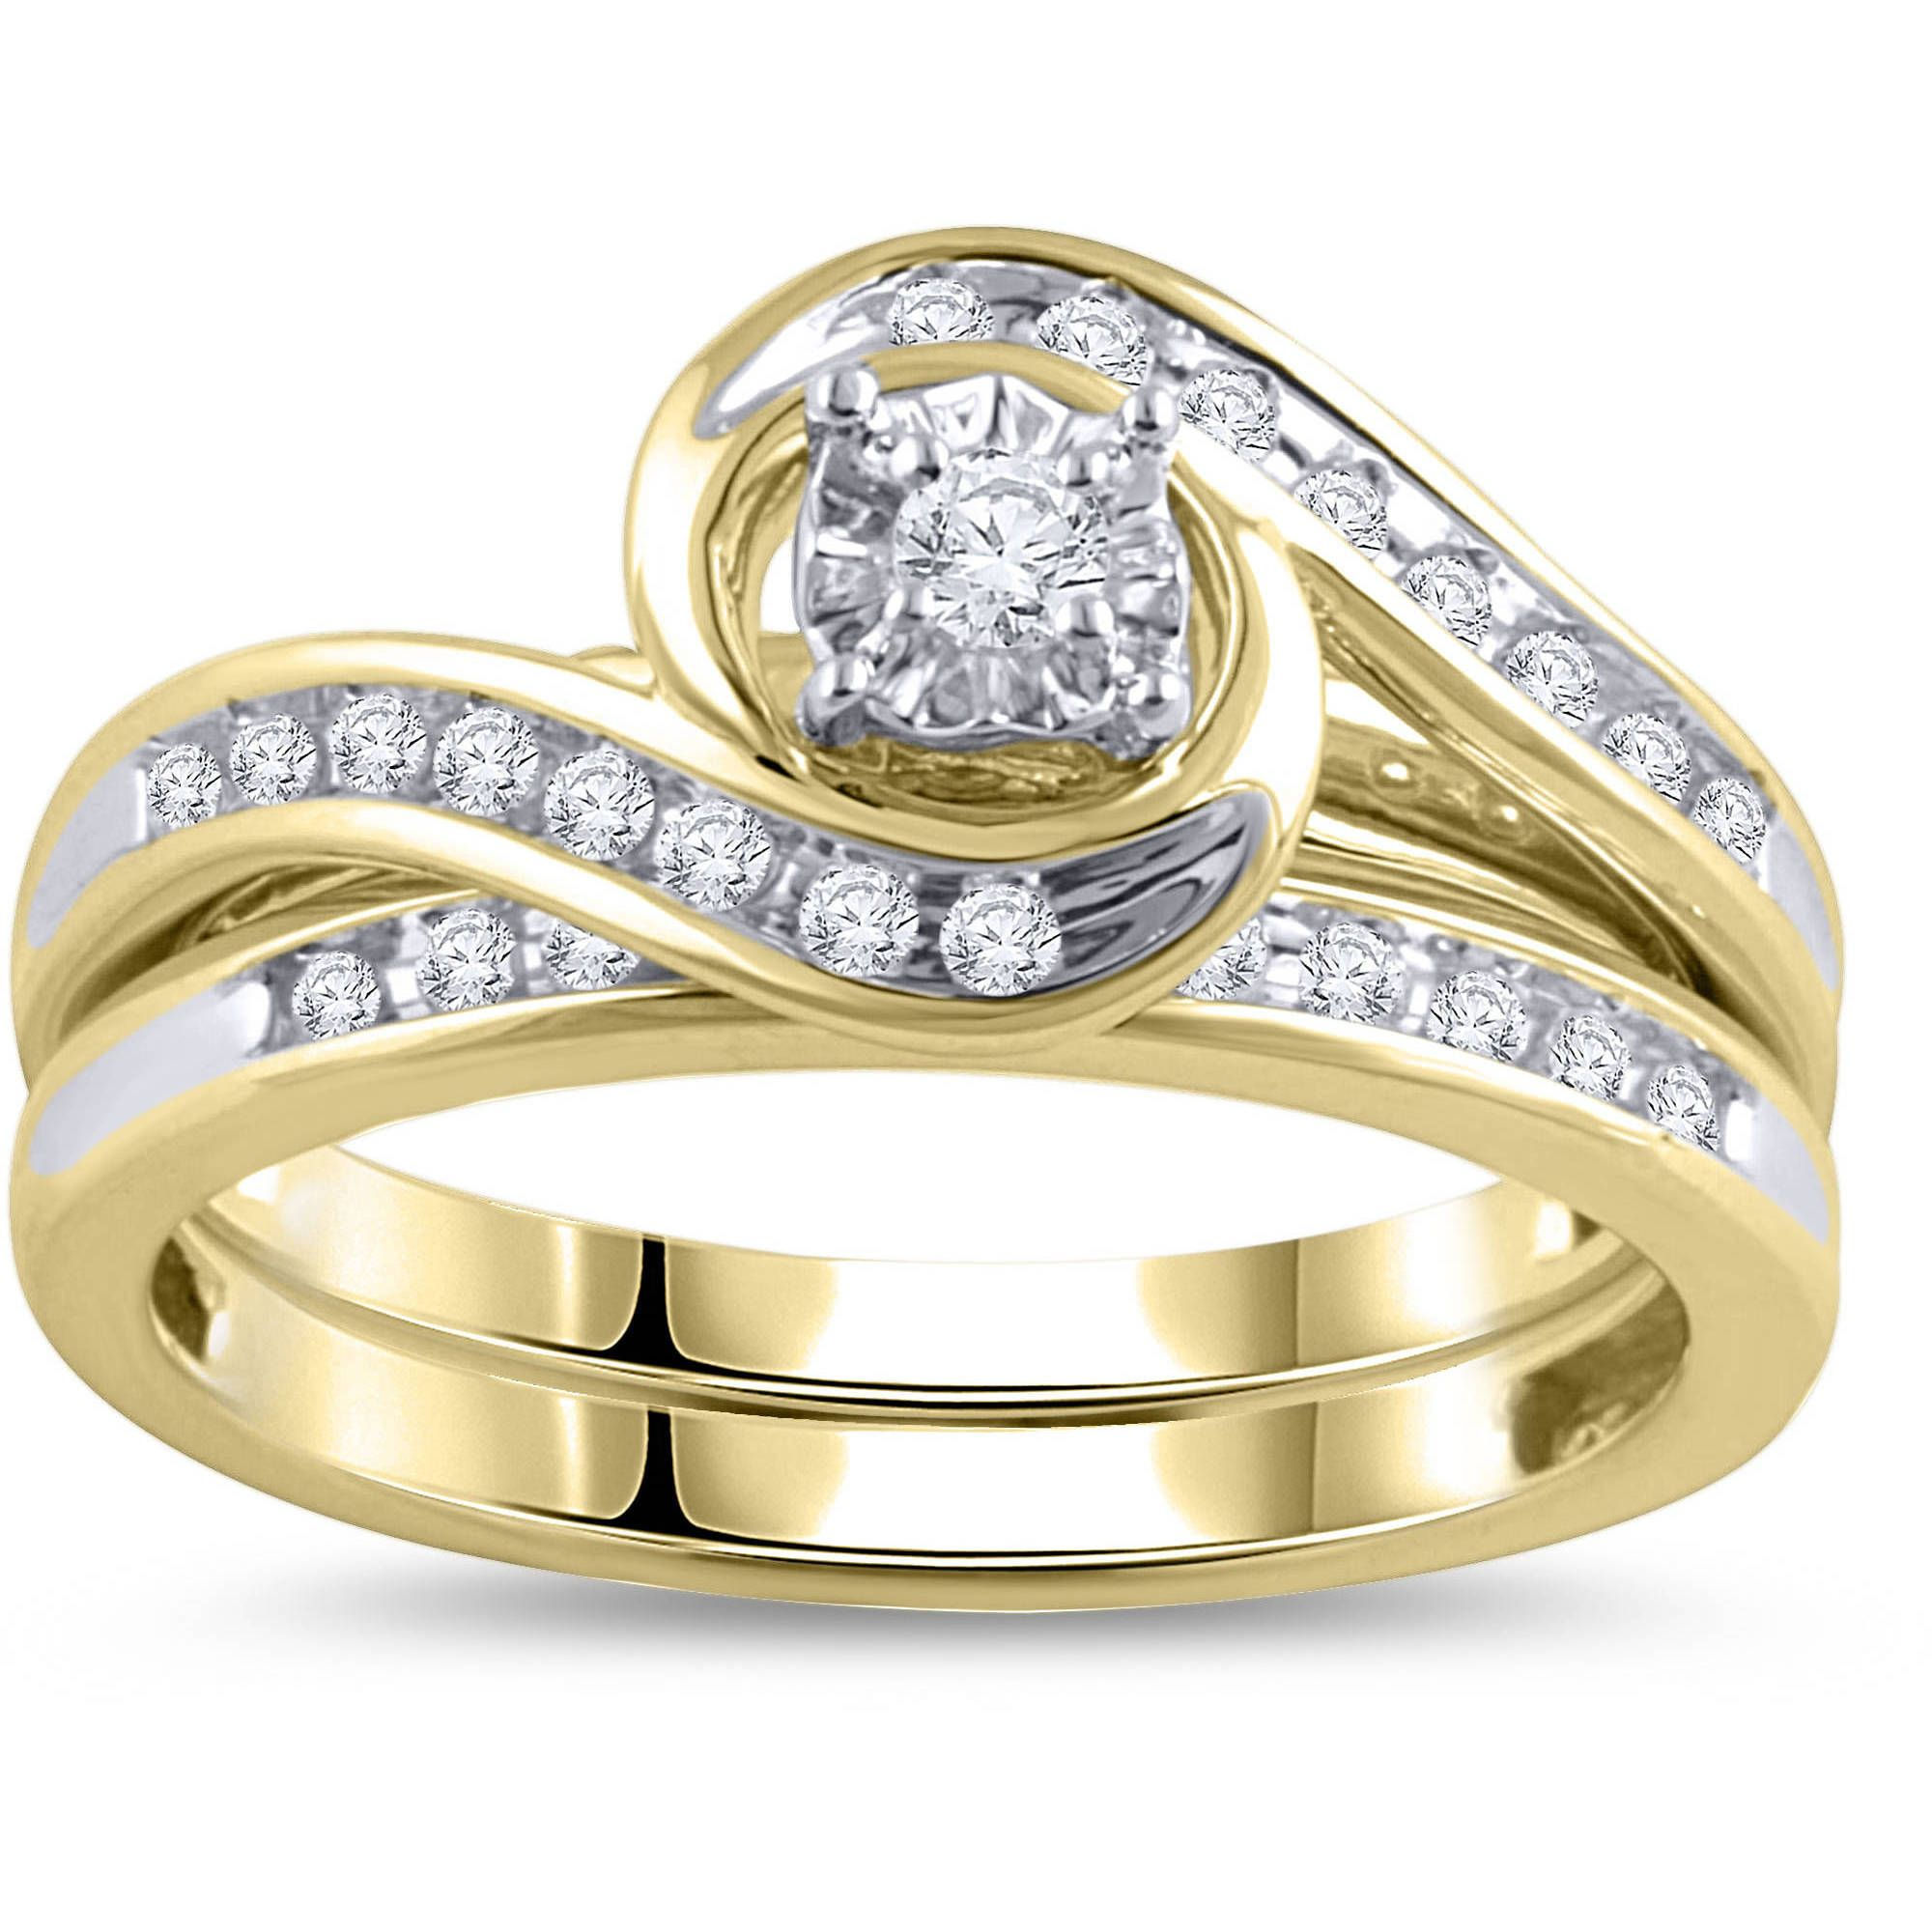 for couples rings diamond promise engagement gold couple ring wedding nicoh